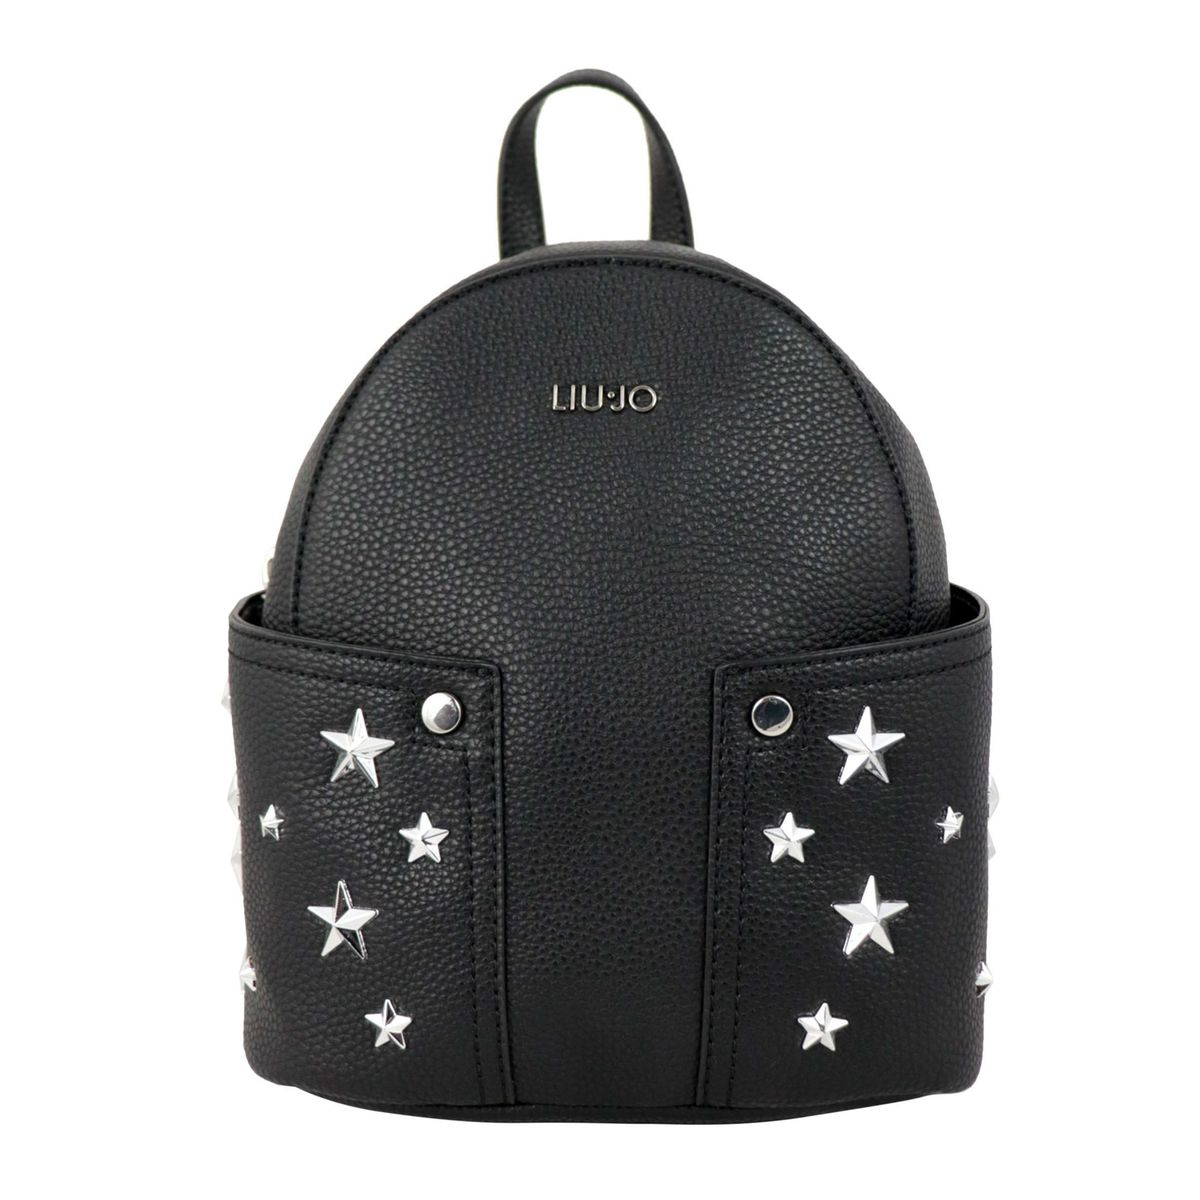 Faux leather backpack with star application Black Liu Jo